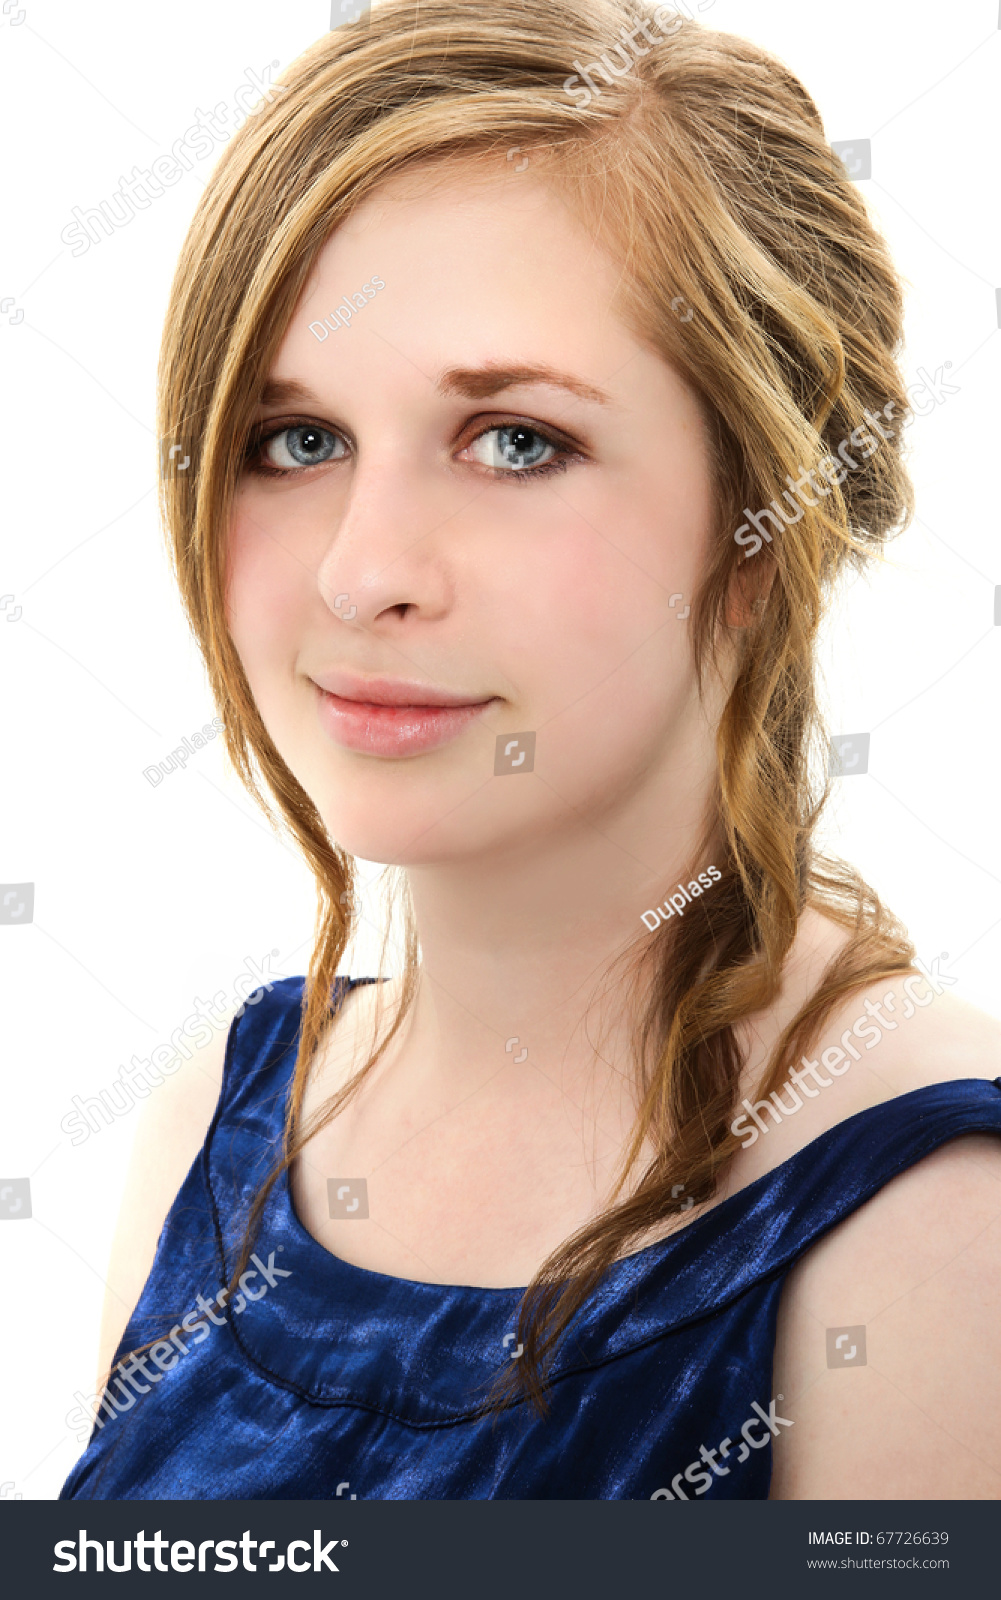 Beautiful 18 Year Old Girl Prom Stock Photo 67726639